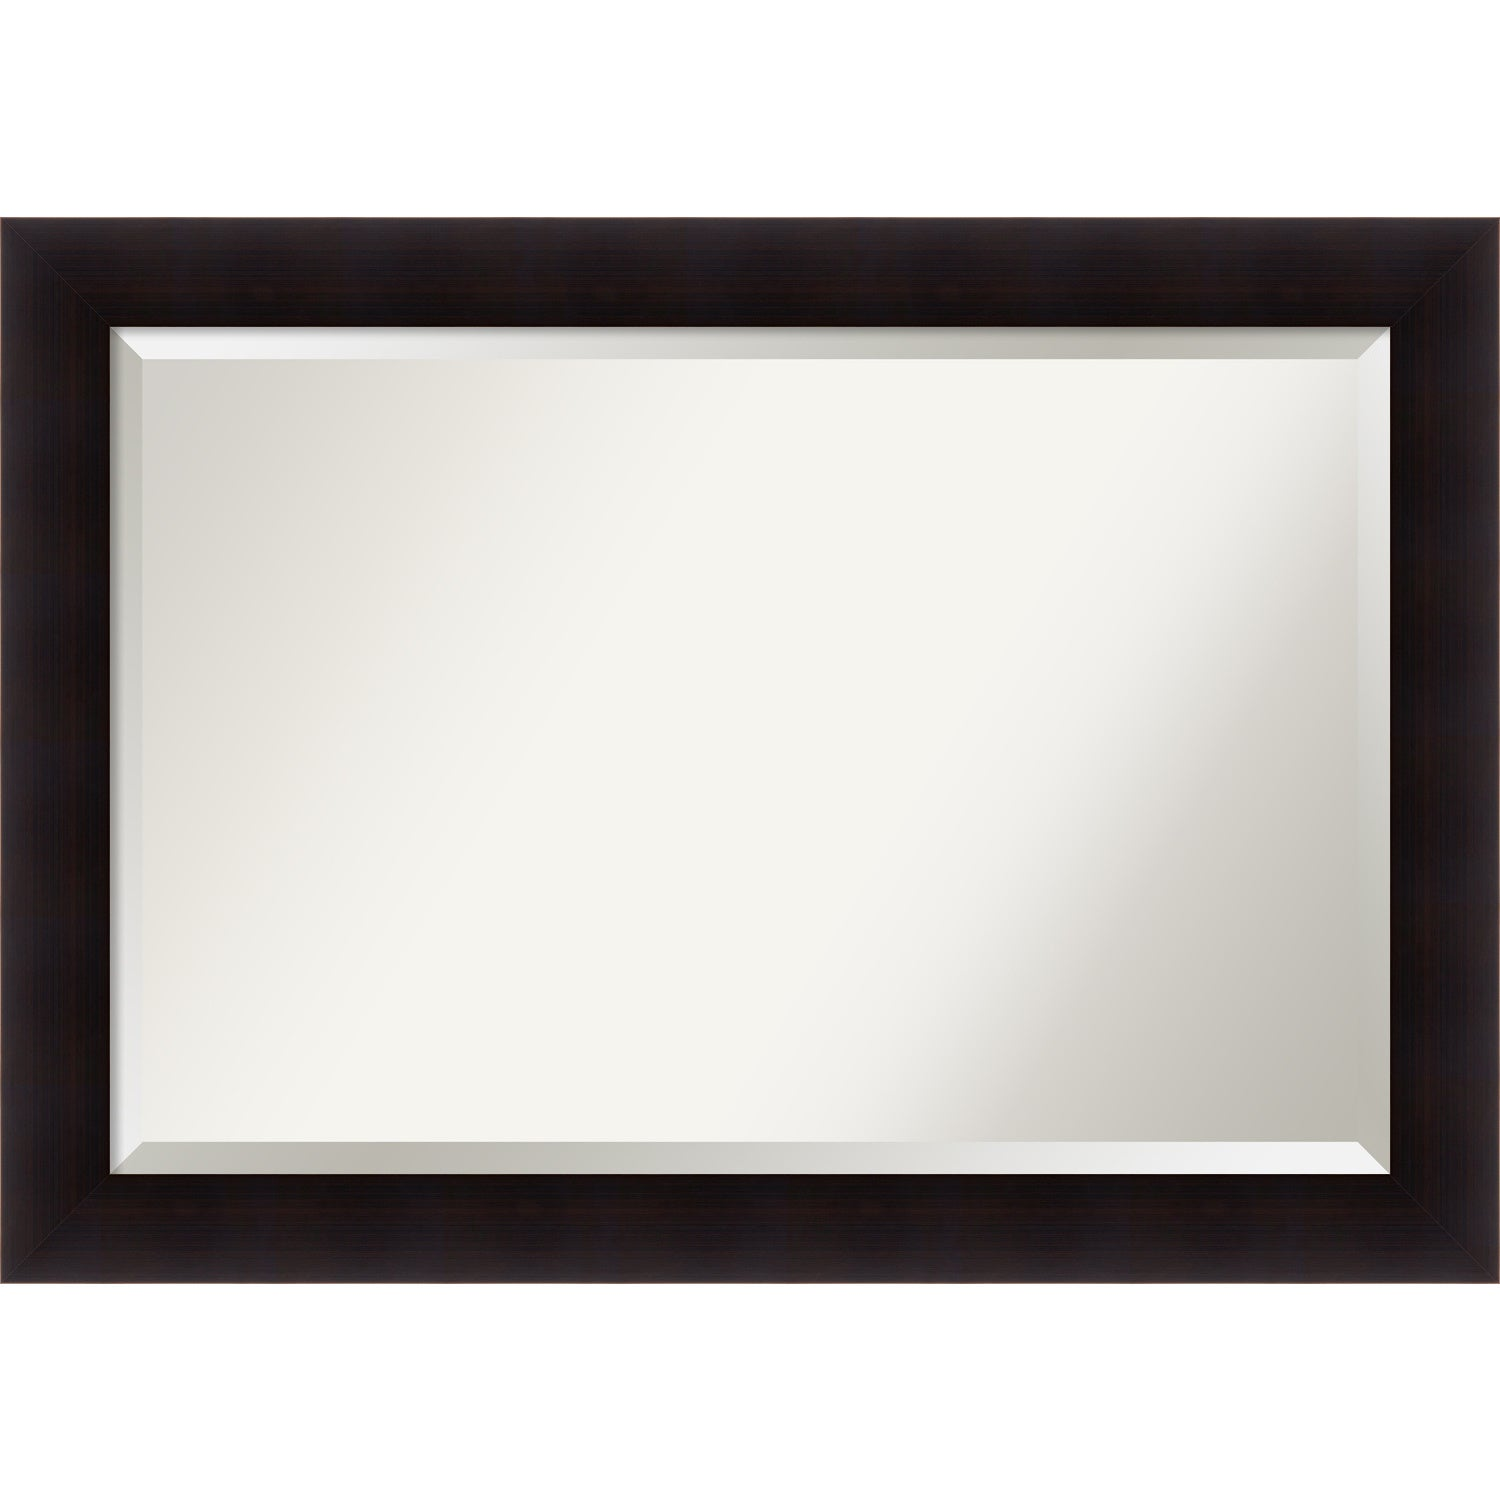 Bathroom Mirror Extra Large Portico Espresso 42 X 30 Inch Brown 29 75 41 0 862 Inches Deep